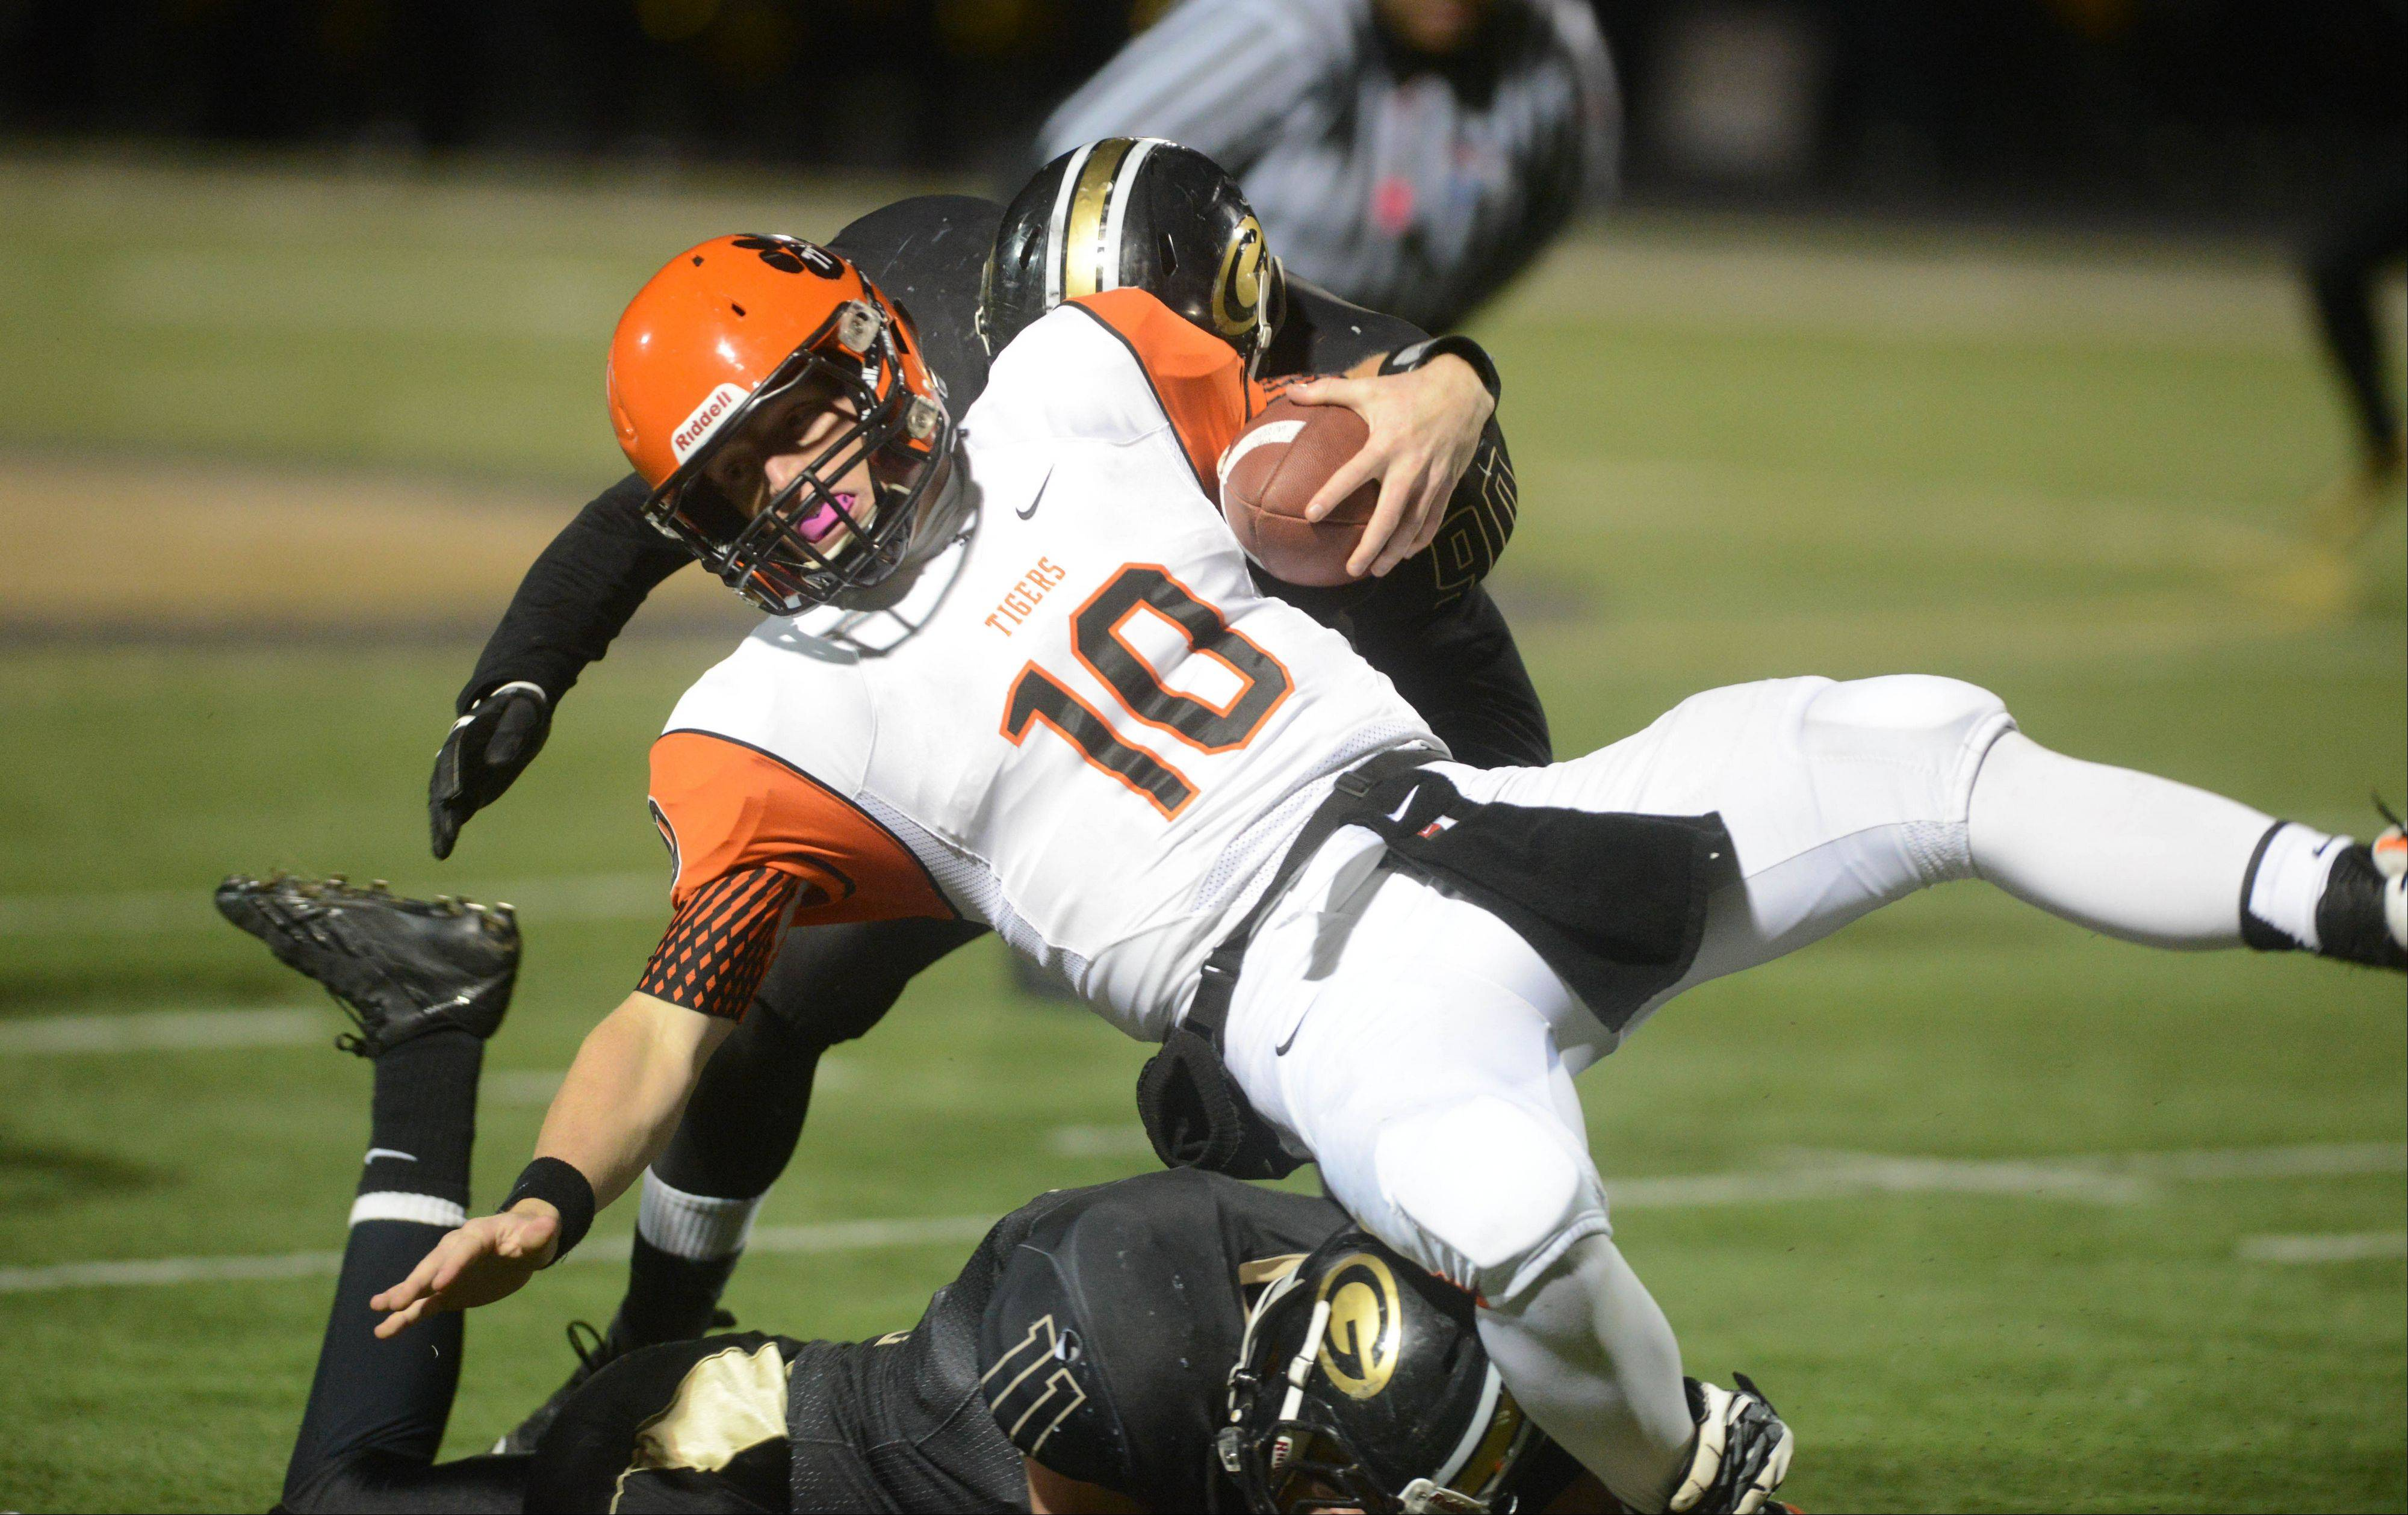 Ryan Graham of Wheaton Warrenville south is pulled down .